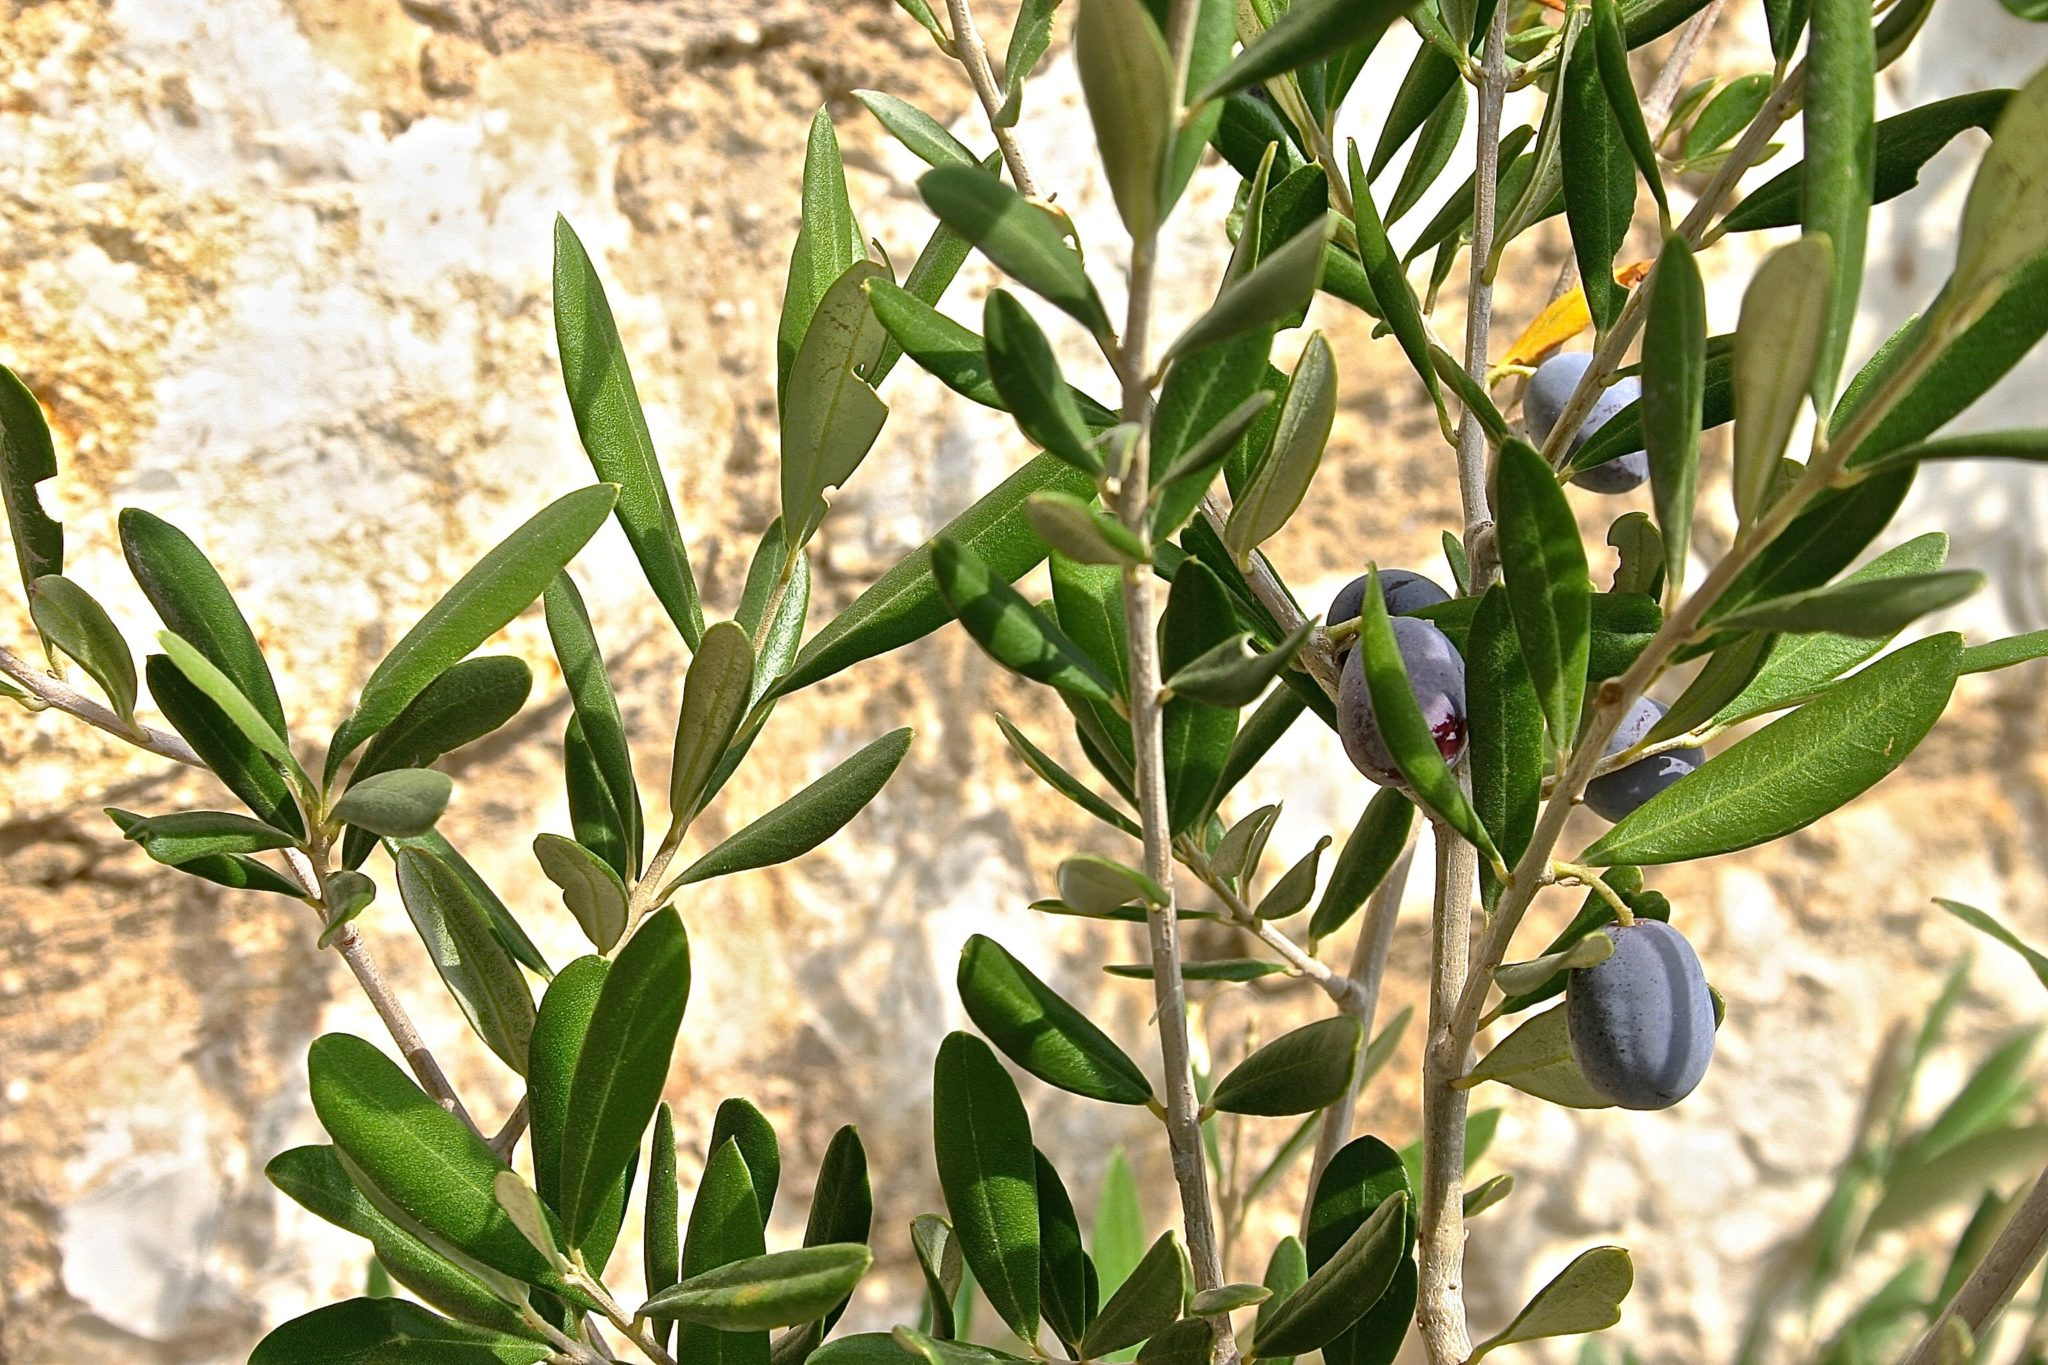 Antioxidants found in olive leaf extract